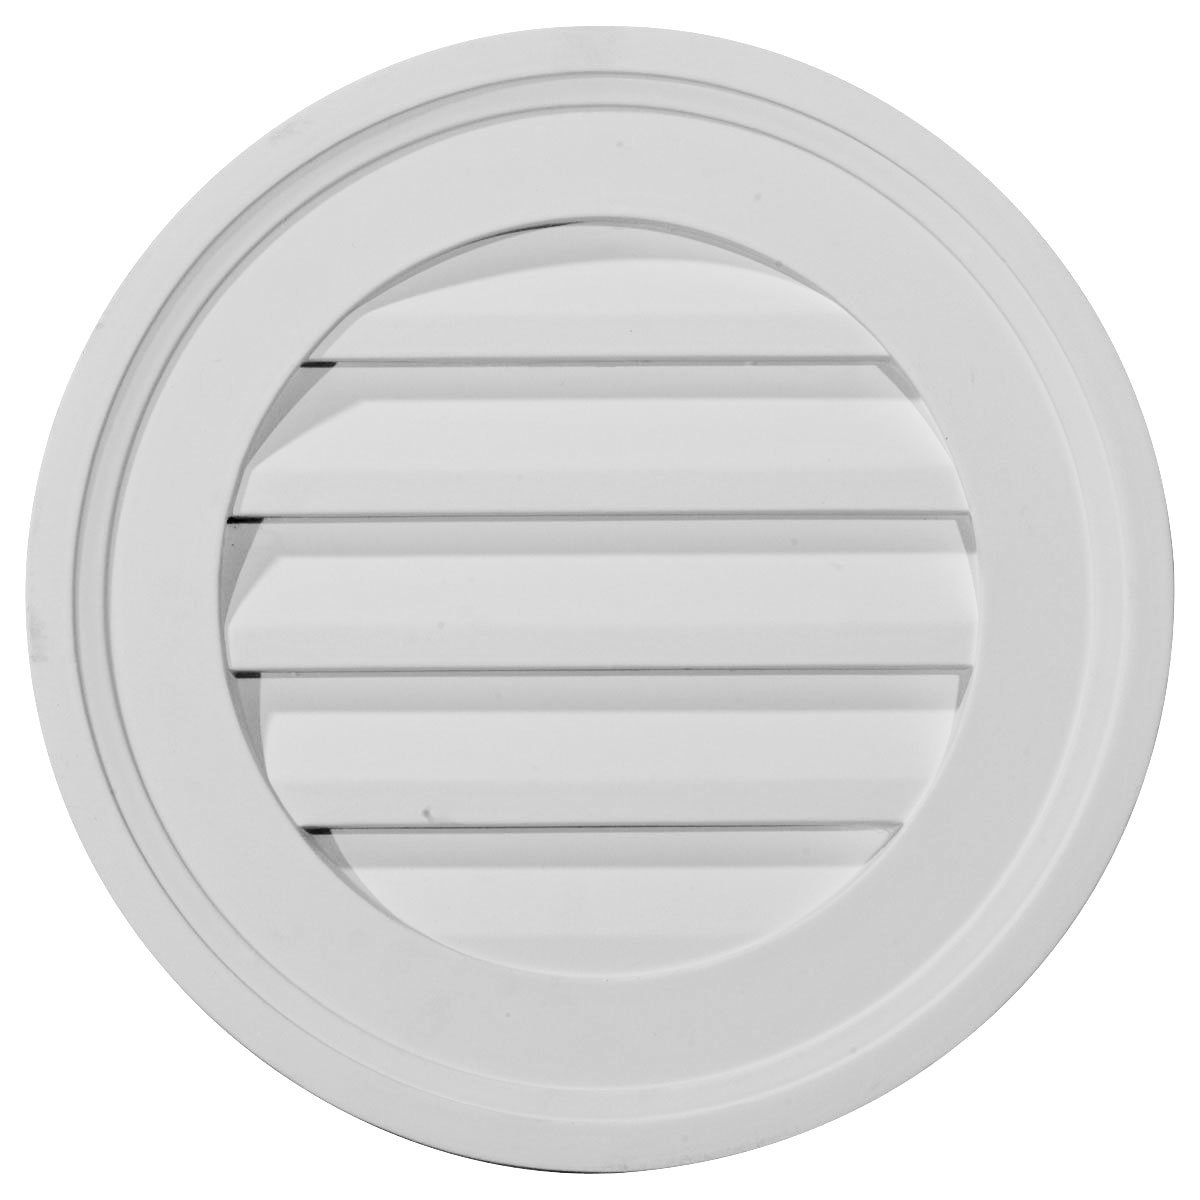 Ekena Millwork GVRO16F 16-Inch W x 16-Inch H x 1 1/2-Inch P Round Gable Vent Louver, Functional